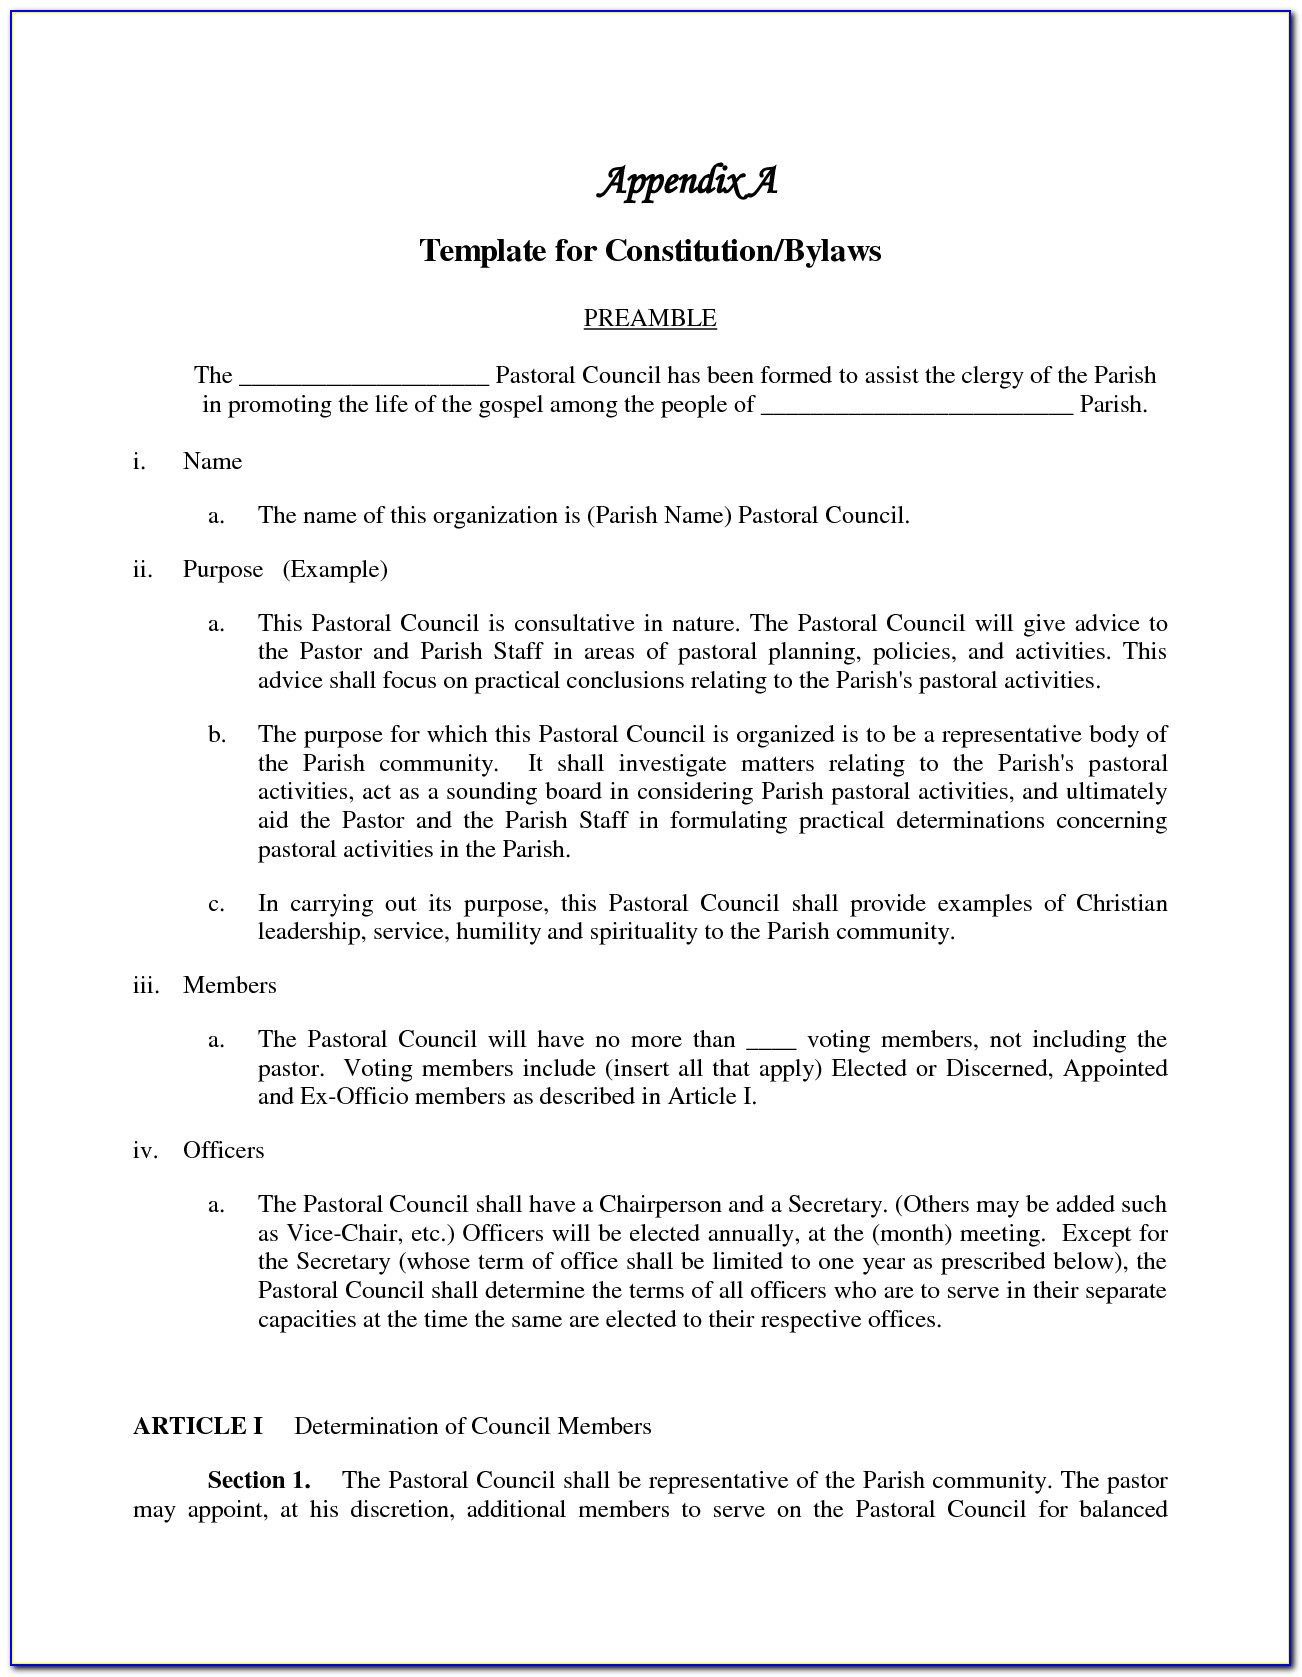 Corporate Bylaw Amendment Template